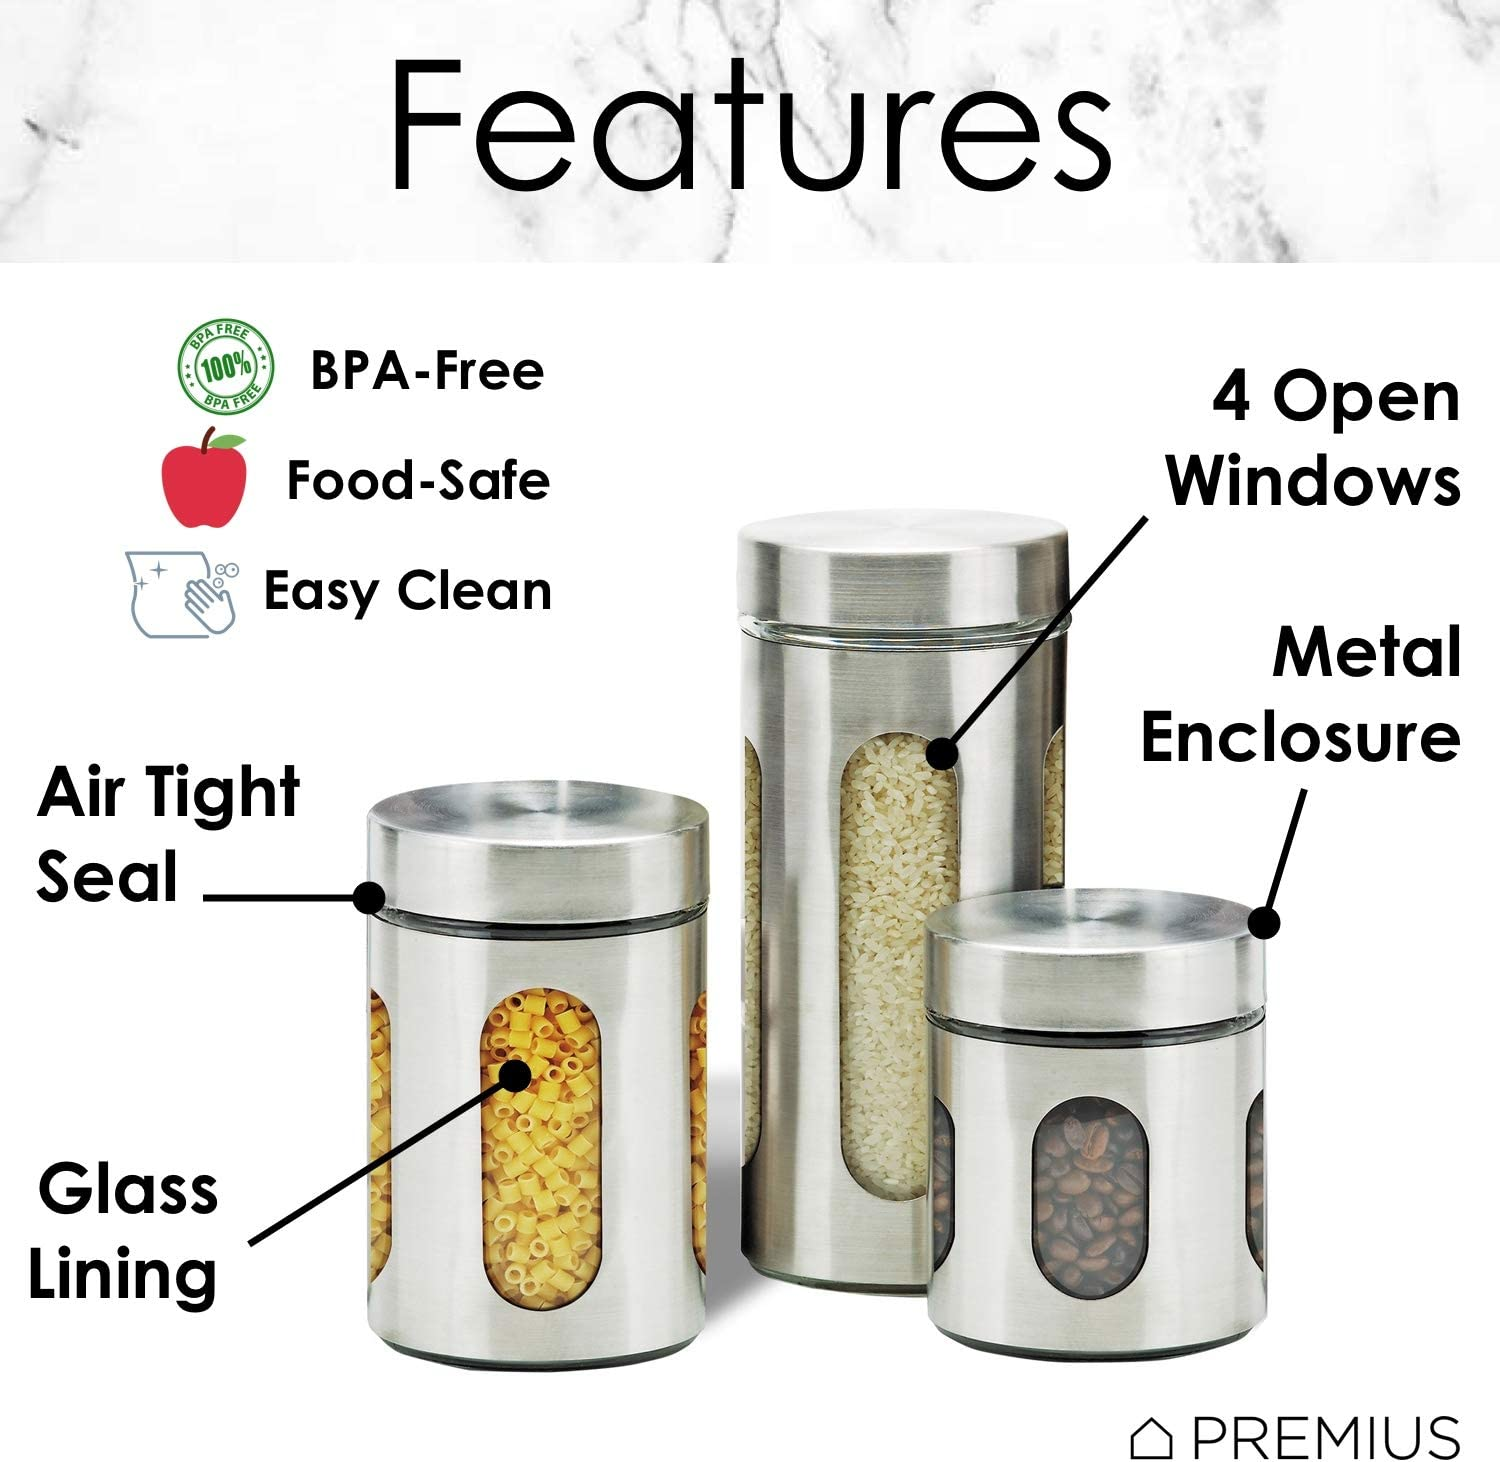 Air Tight Kitchen Canister Set By Premius 3 Piece Glass And Metal Canisters Quick Access And Space Saving Great Safe And Fresh Food Convenient Sizes Modern Design Stainless Steel Silver Kitchen Dining